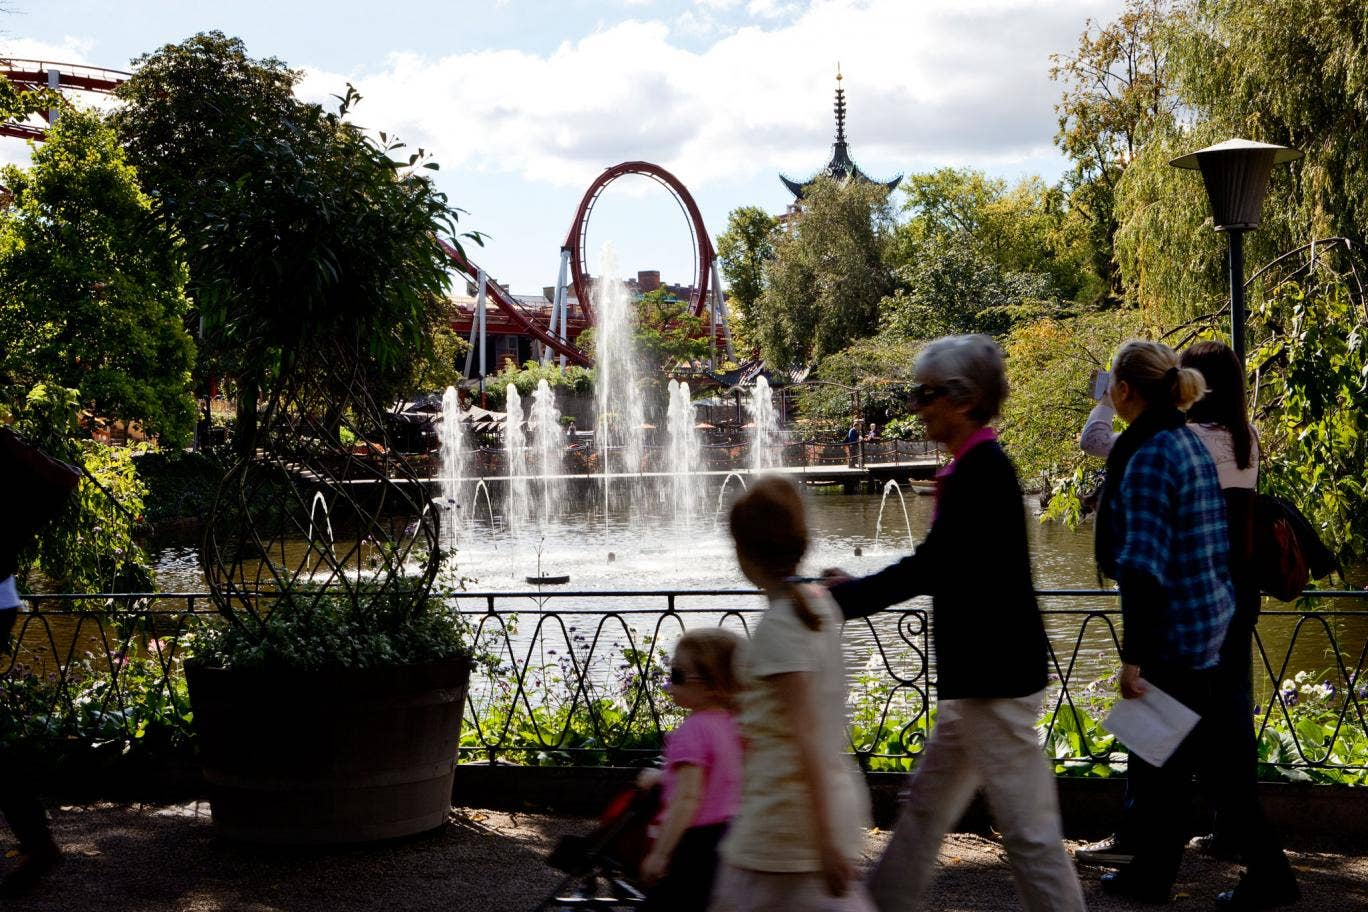 Green day out: Copenhagen is hugely proud of the Tivoli gardens